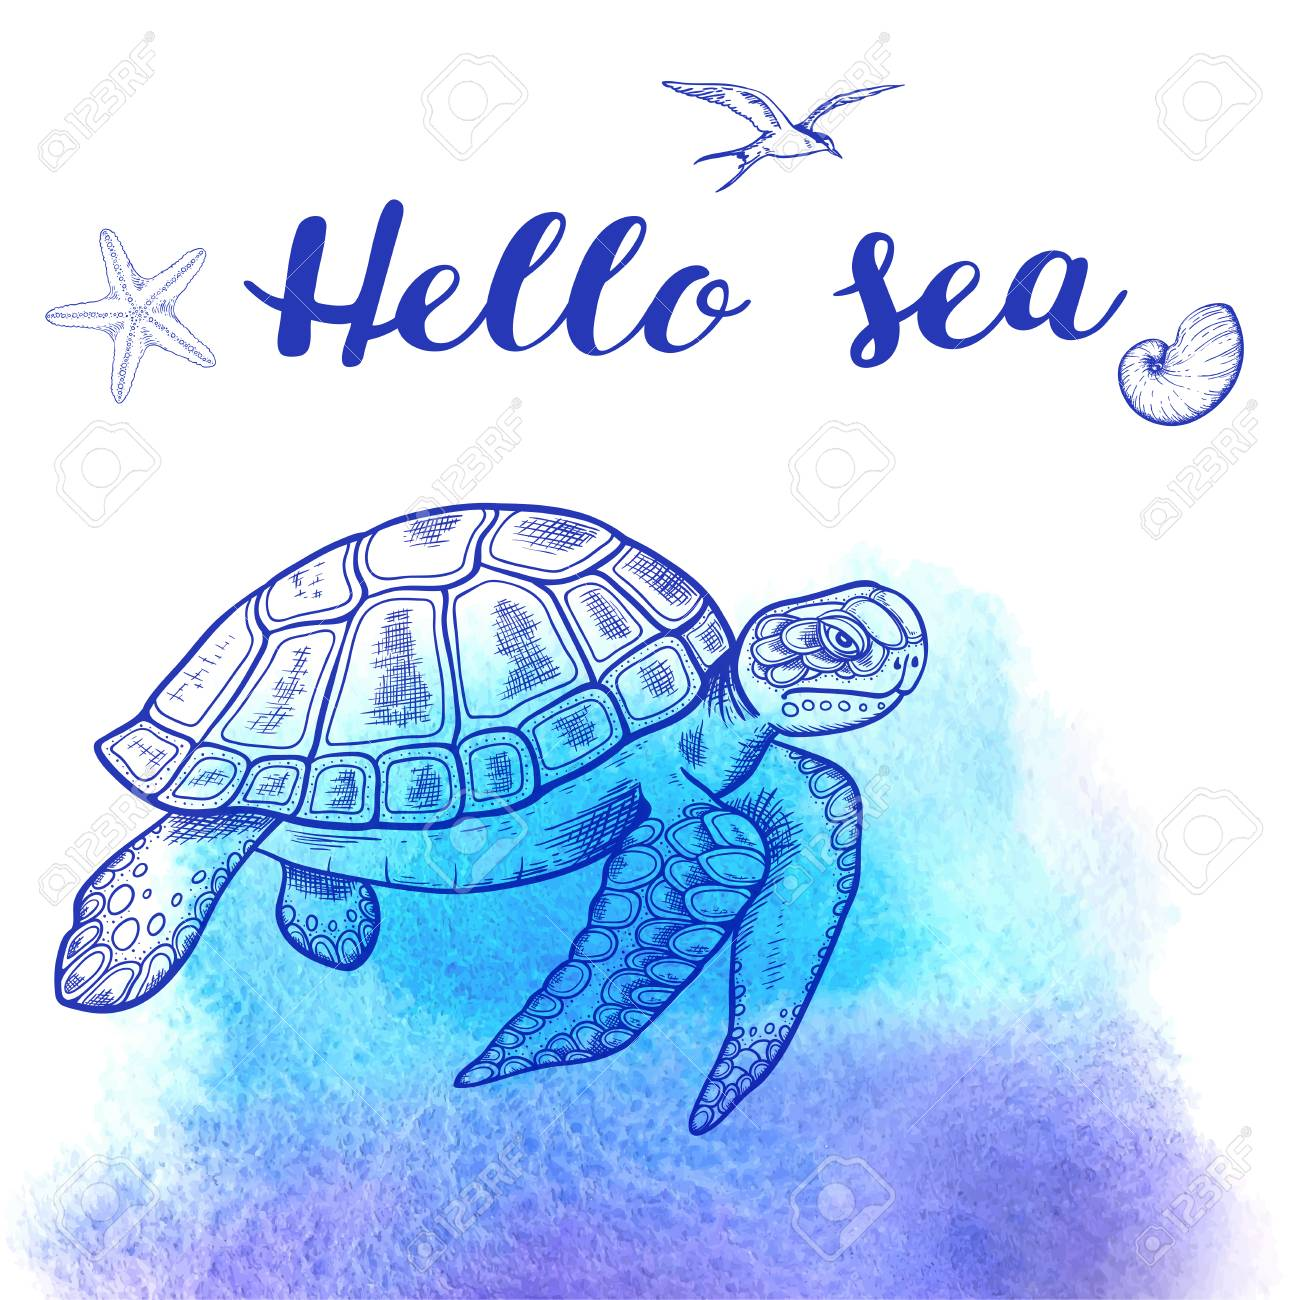 Vector Hand Drawn Sea Turtle On A Blue Watercolor Background Royalty Free Cliparts Vectors And Stock Illustration Image 78540733